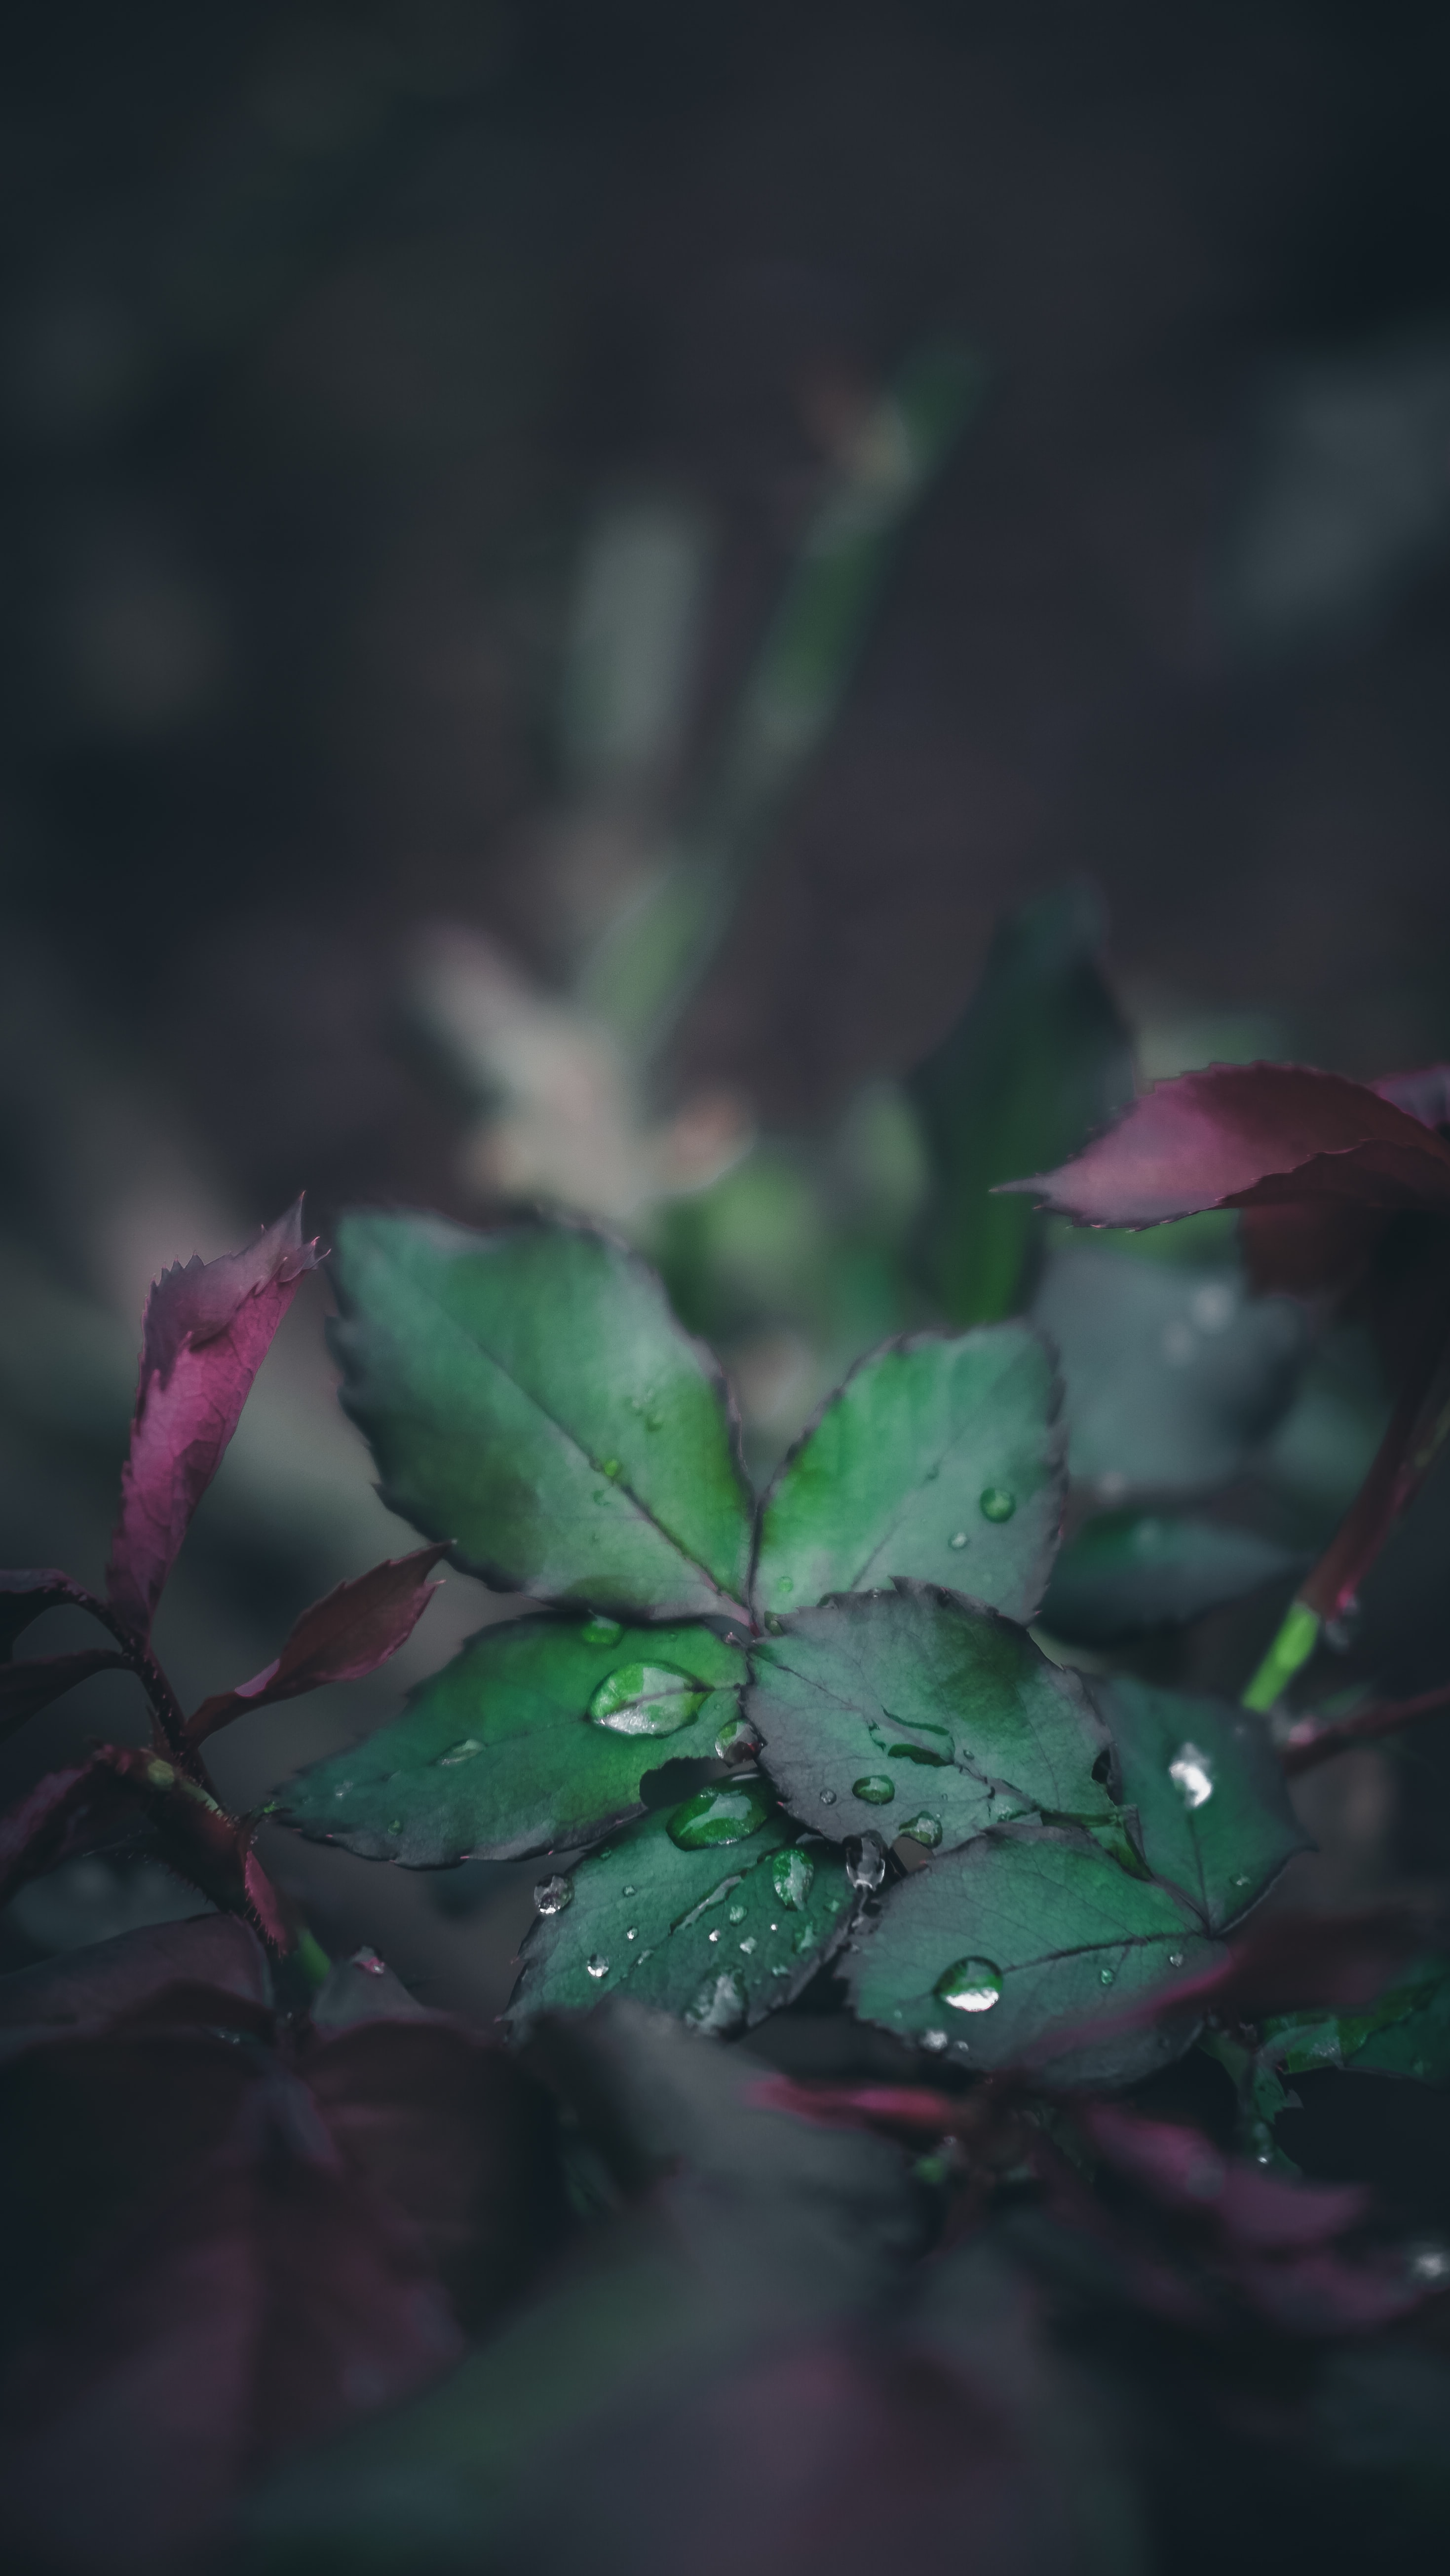 water drops on green leaf plant